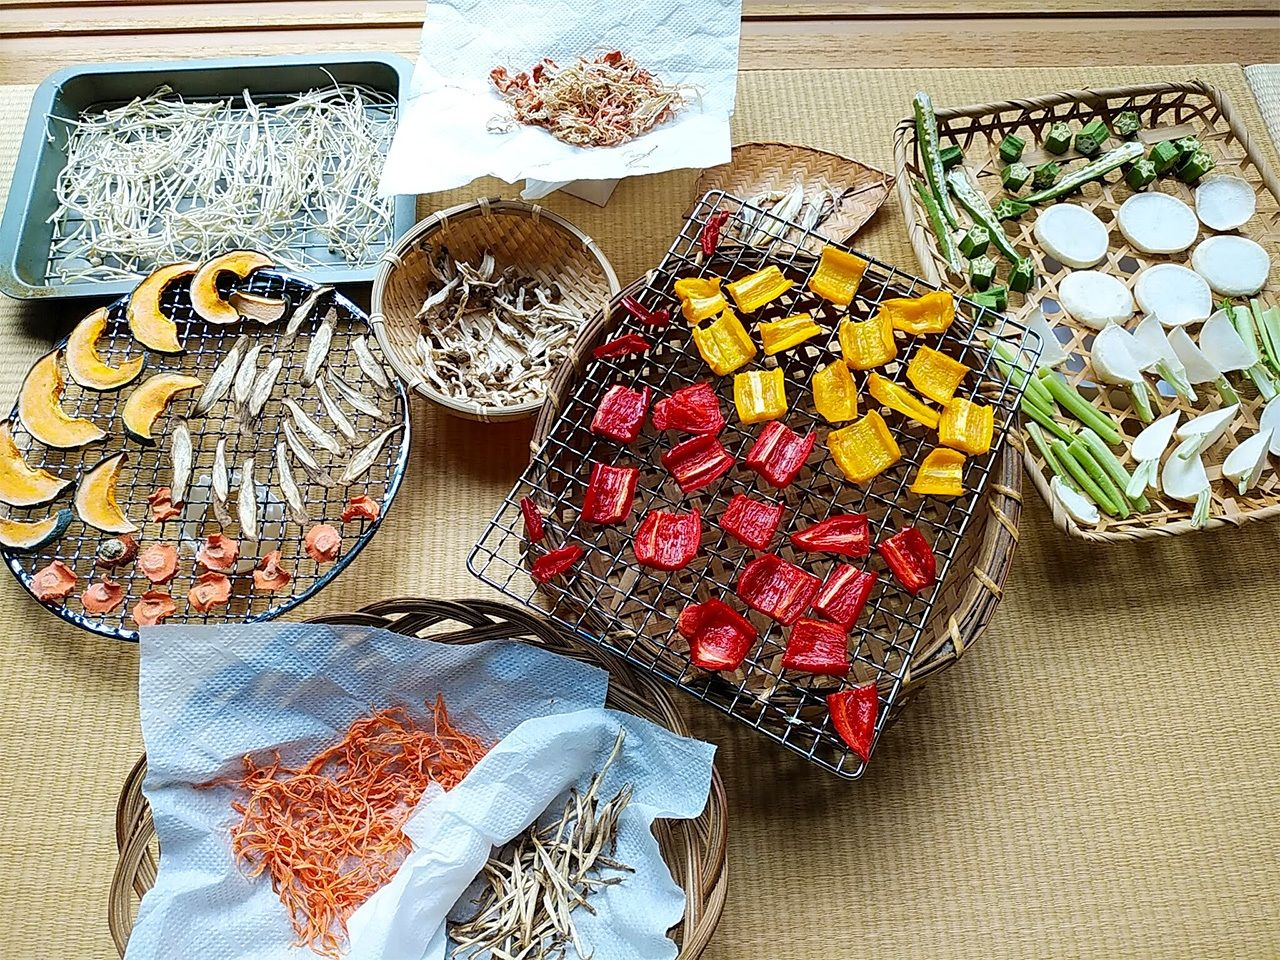 Kanbutsu can be made indoors, too. Top row, from left: enoki mushrooms, carrots, and daikon mix. Middle at left: pumpkin, carrots, and burdock; shimeji mushrooms; myōga ginger bulbs. Diagonally from bottom to right: carrots and burdock; bell peppers; and turnip slices with okra.